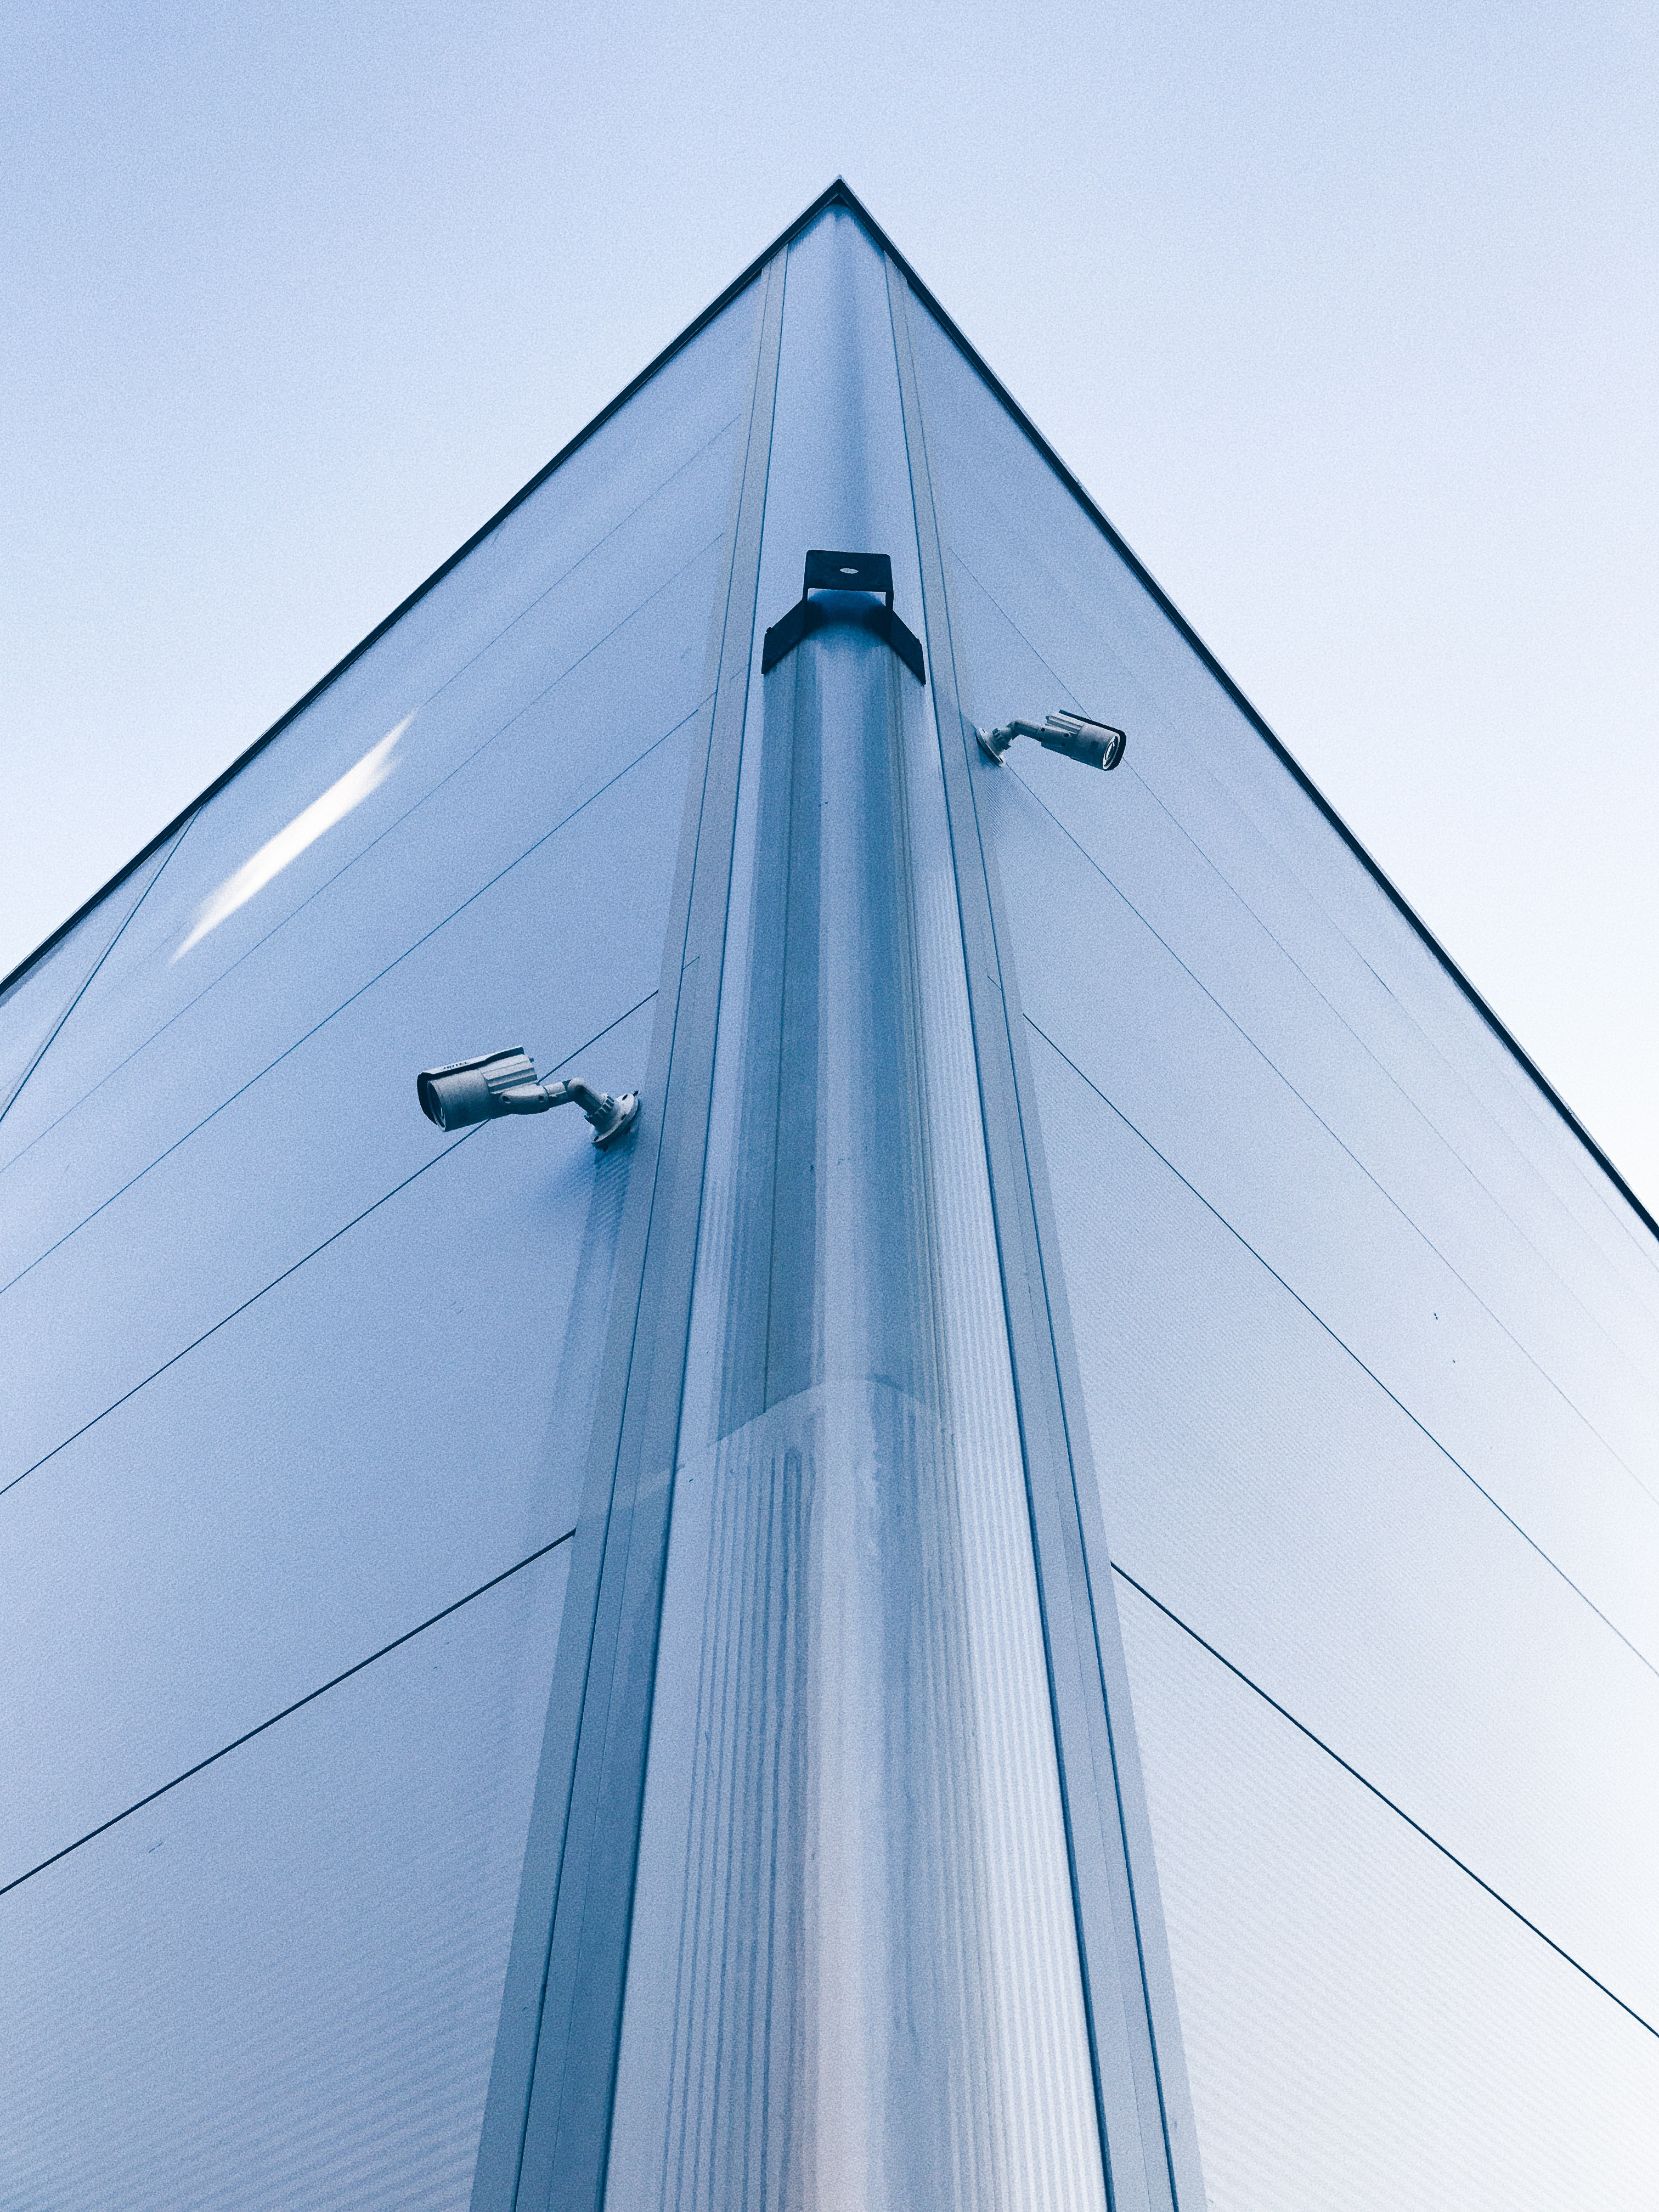 low-angle photo of building with security cameras